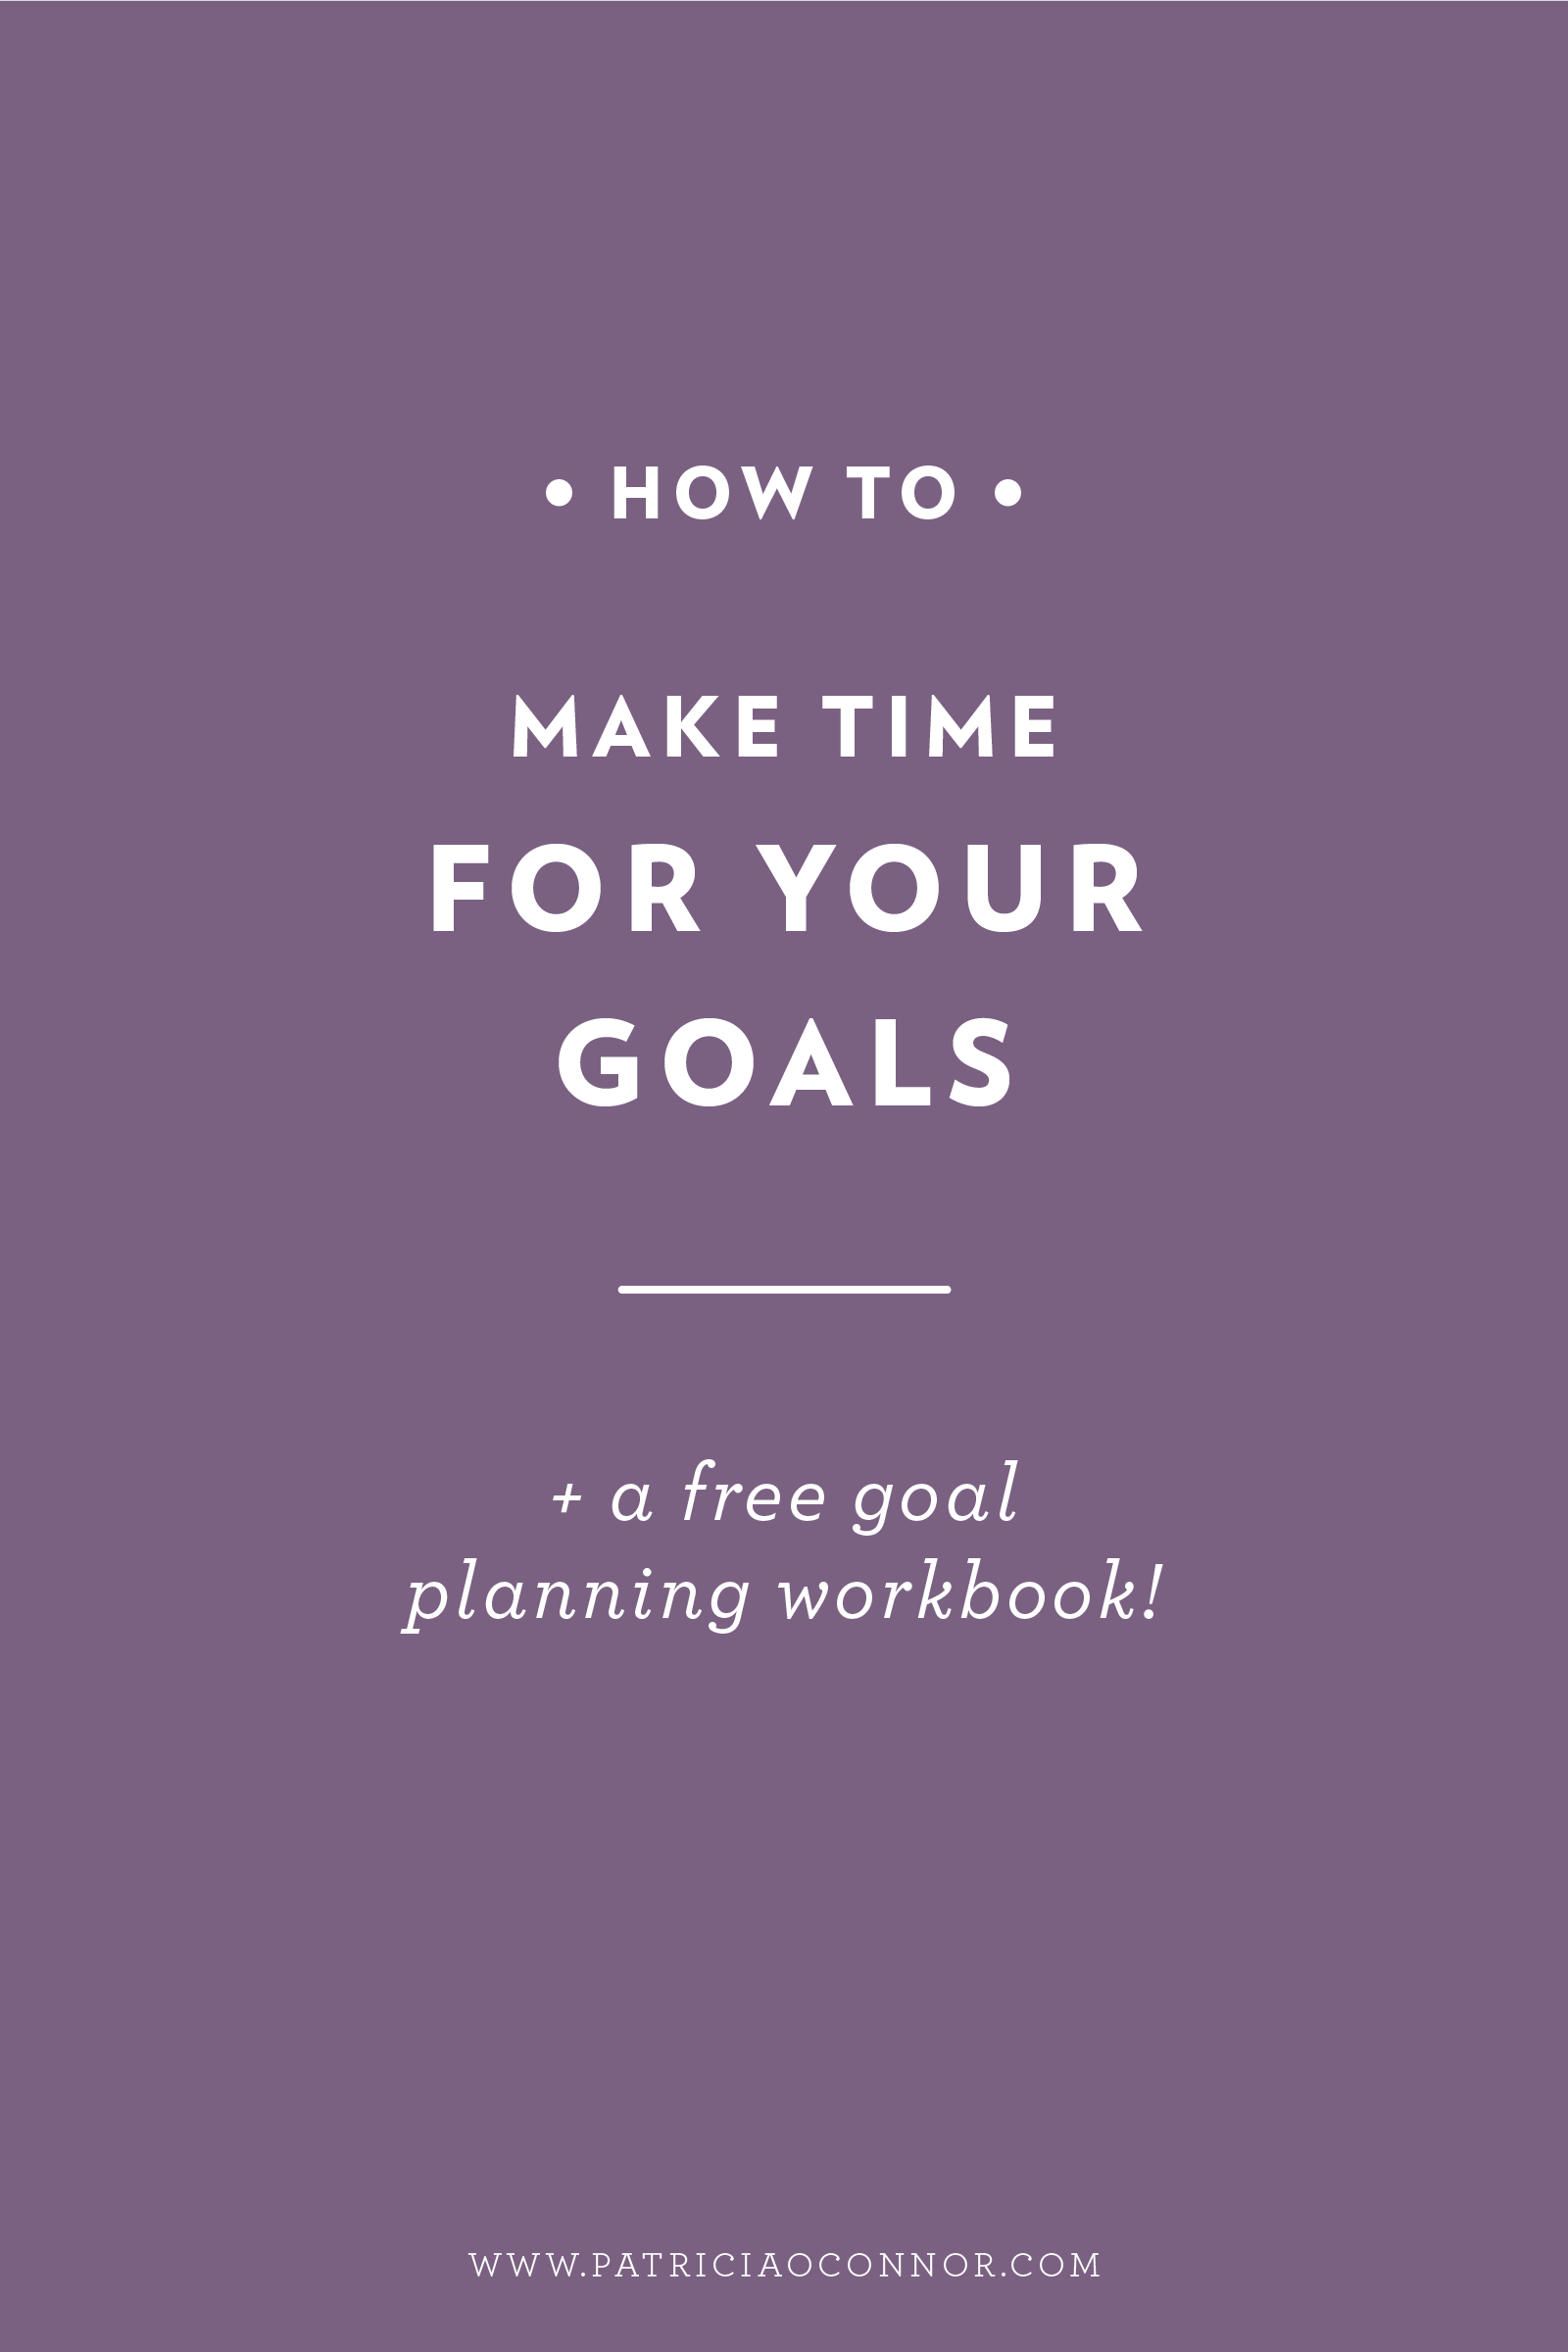 Learn how to make time every day for your long term goals. Download your free goal planning workbook and get started!